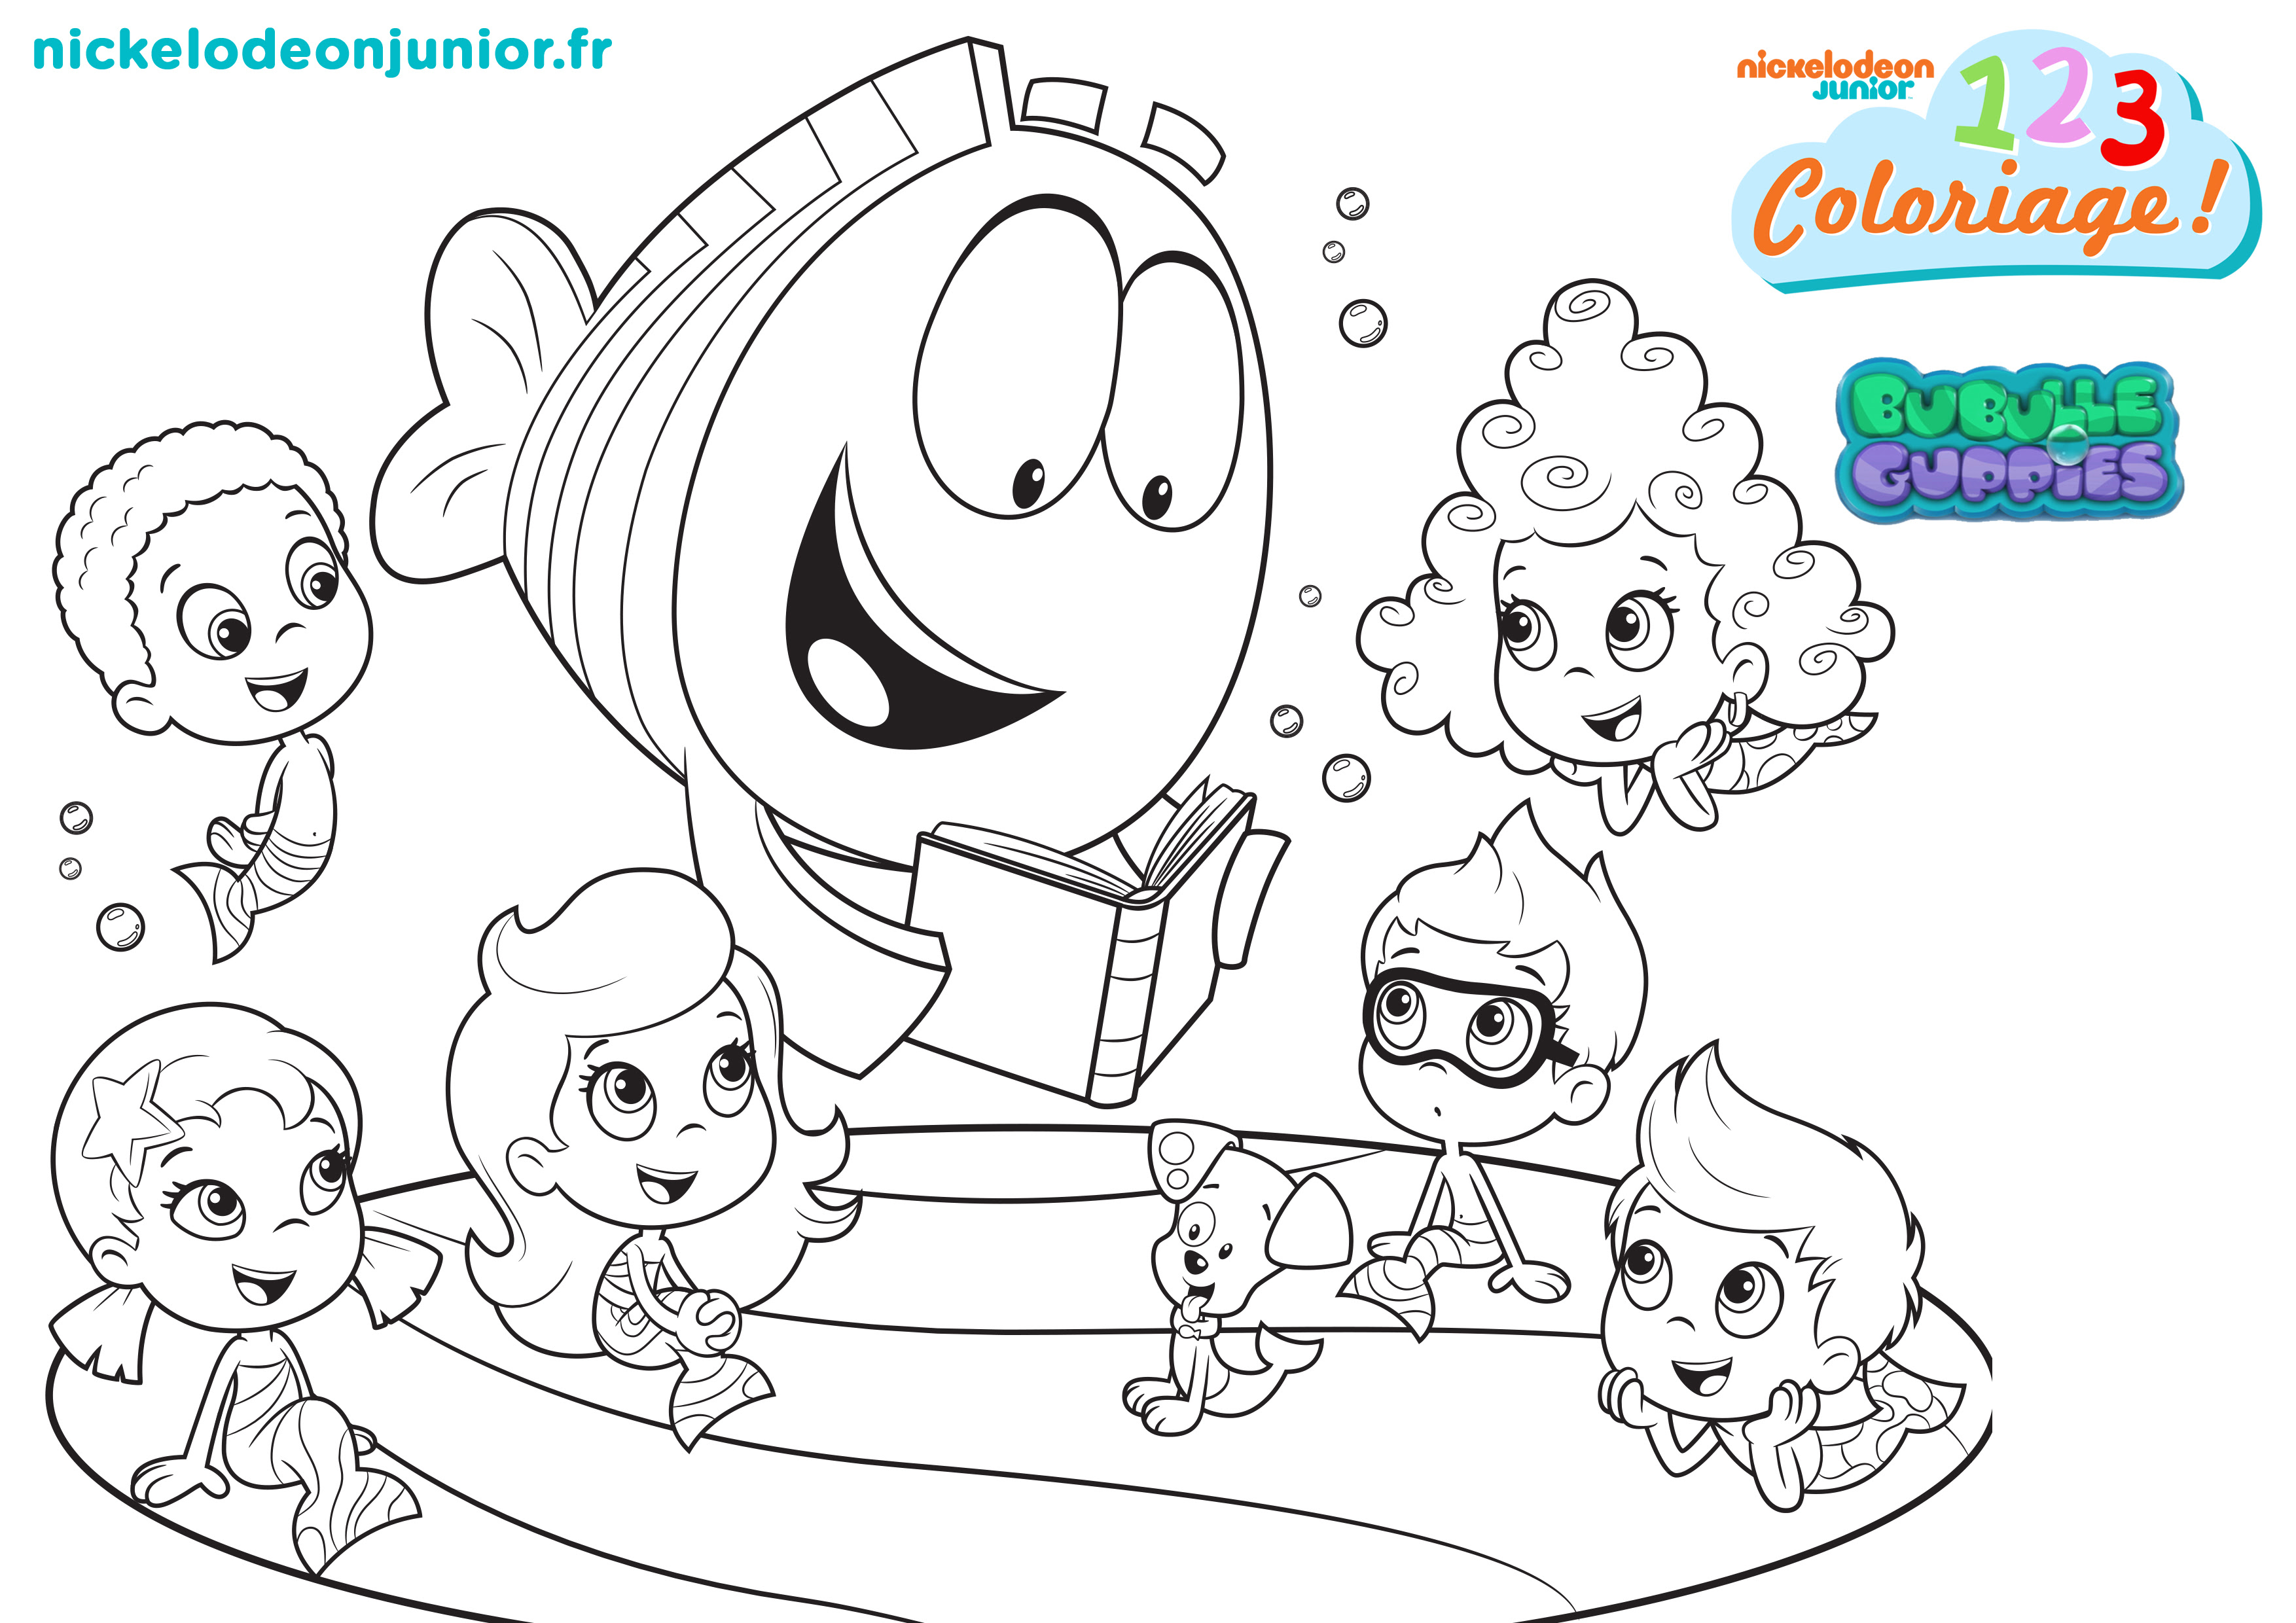 04 123 coloriage bubulle